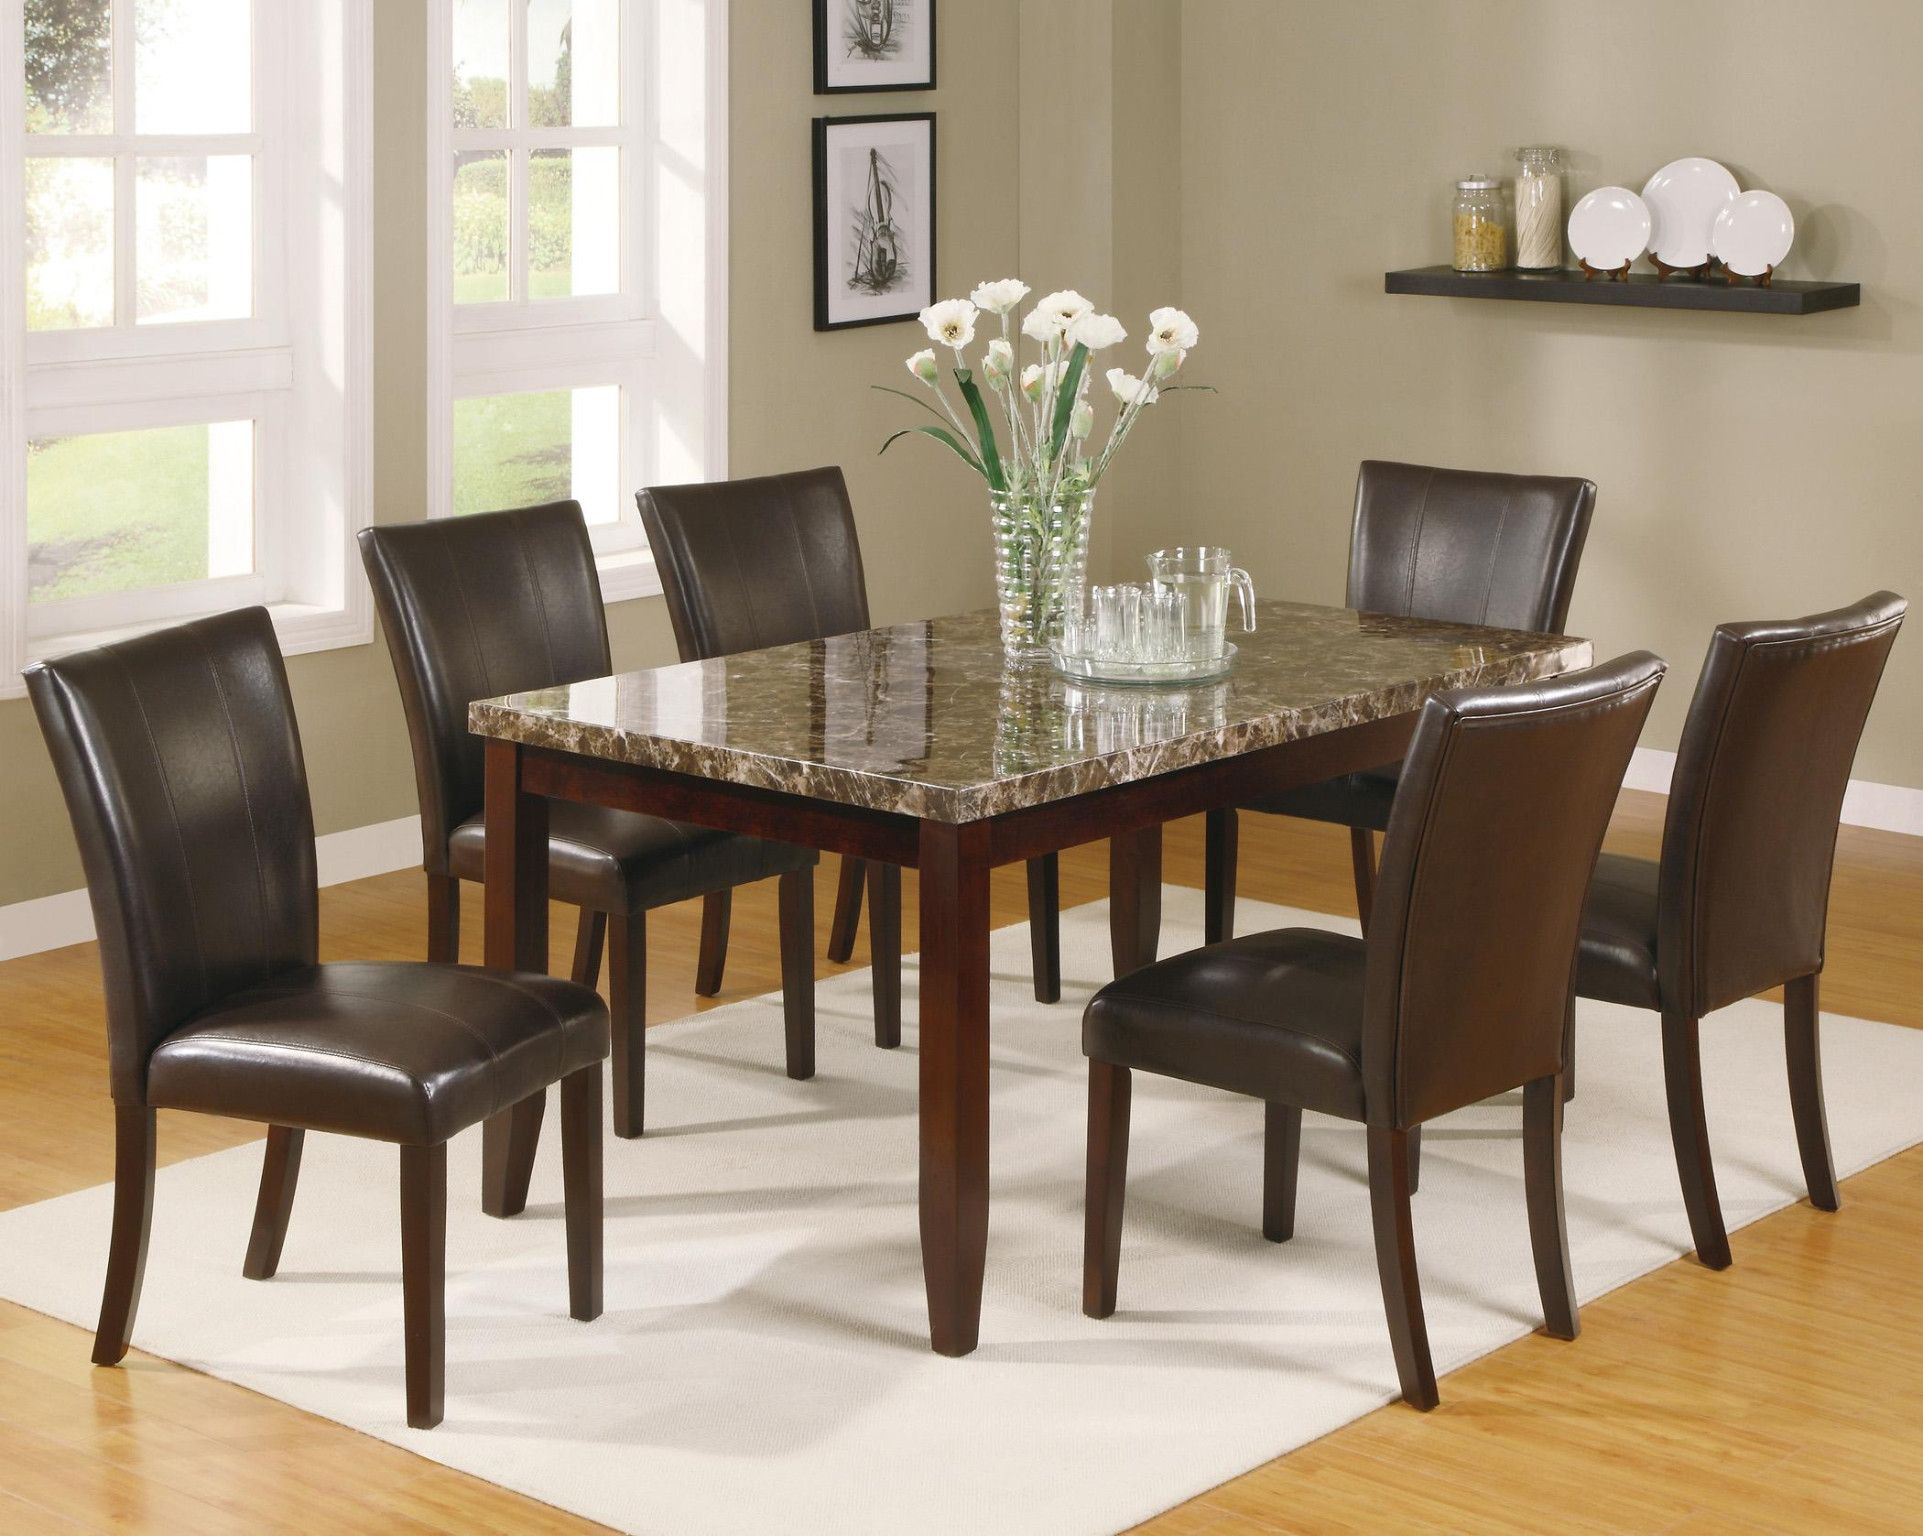 Ferrara 5 Piece Dinette Table And 4 Chairs 498 00 Table 38 X 64